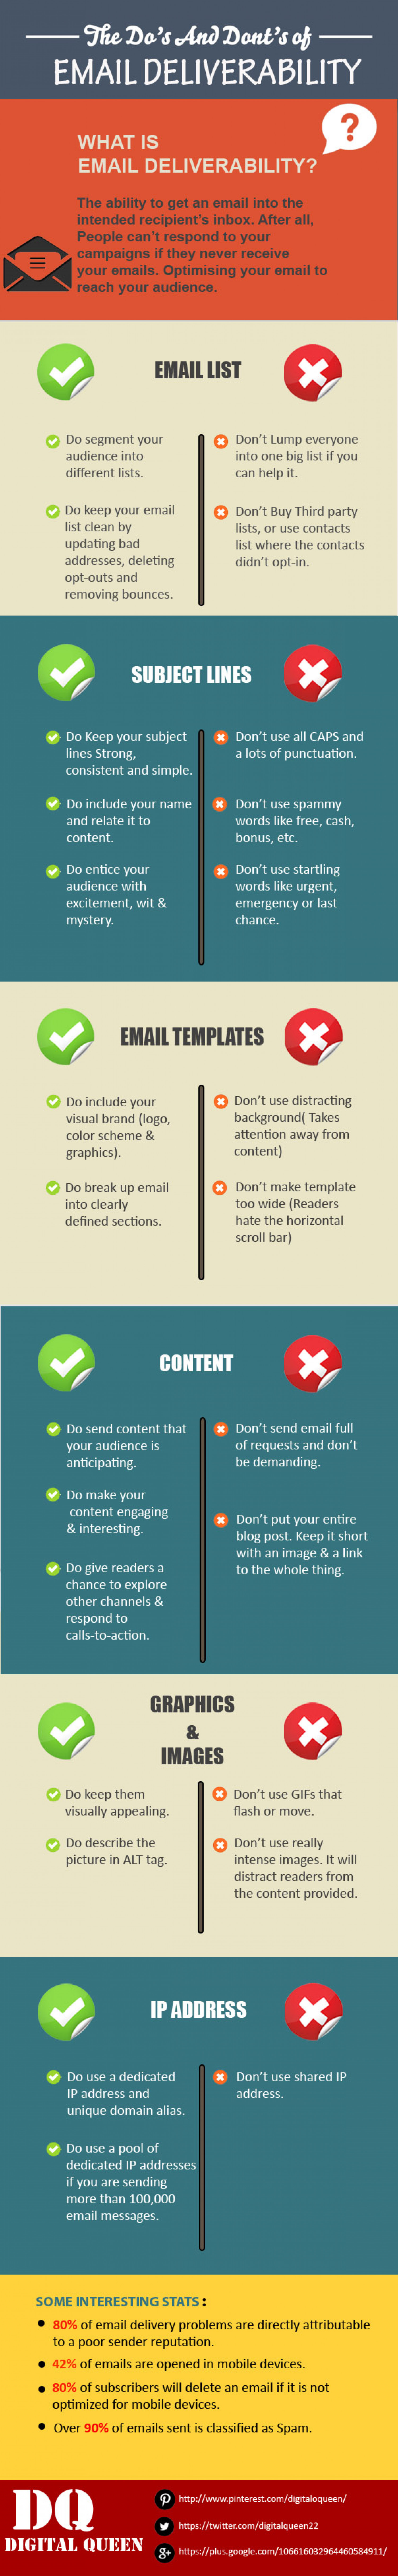 The Do's and Don'ts of Email Deliverability Infographic